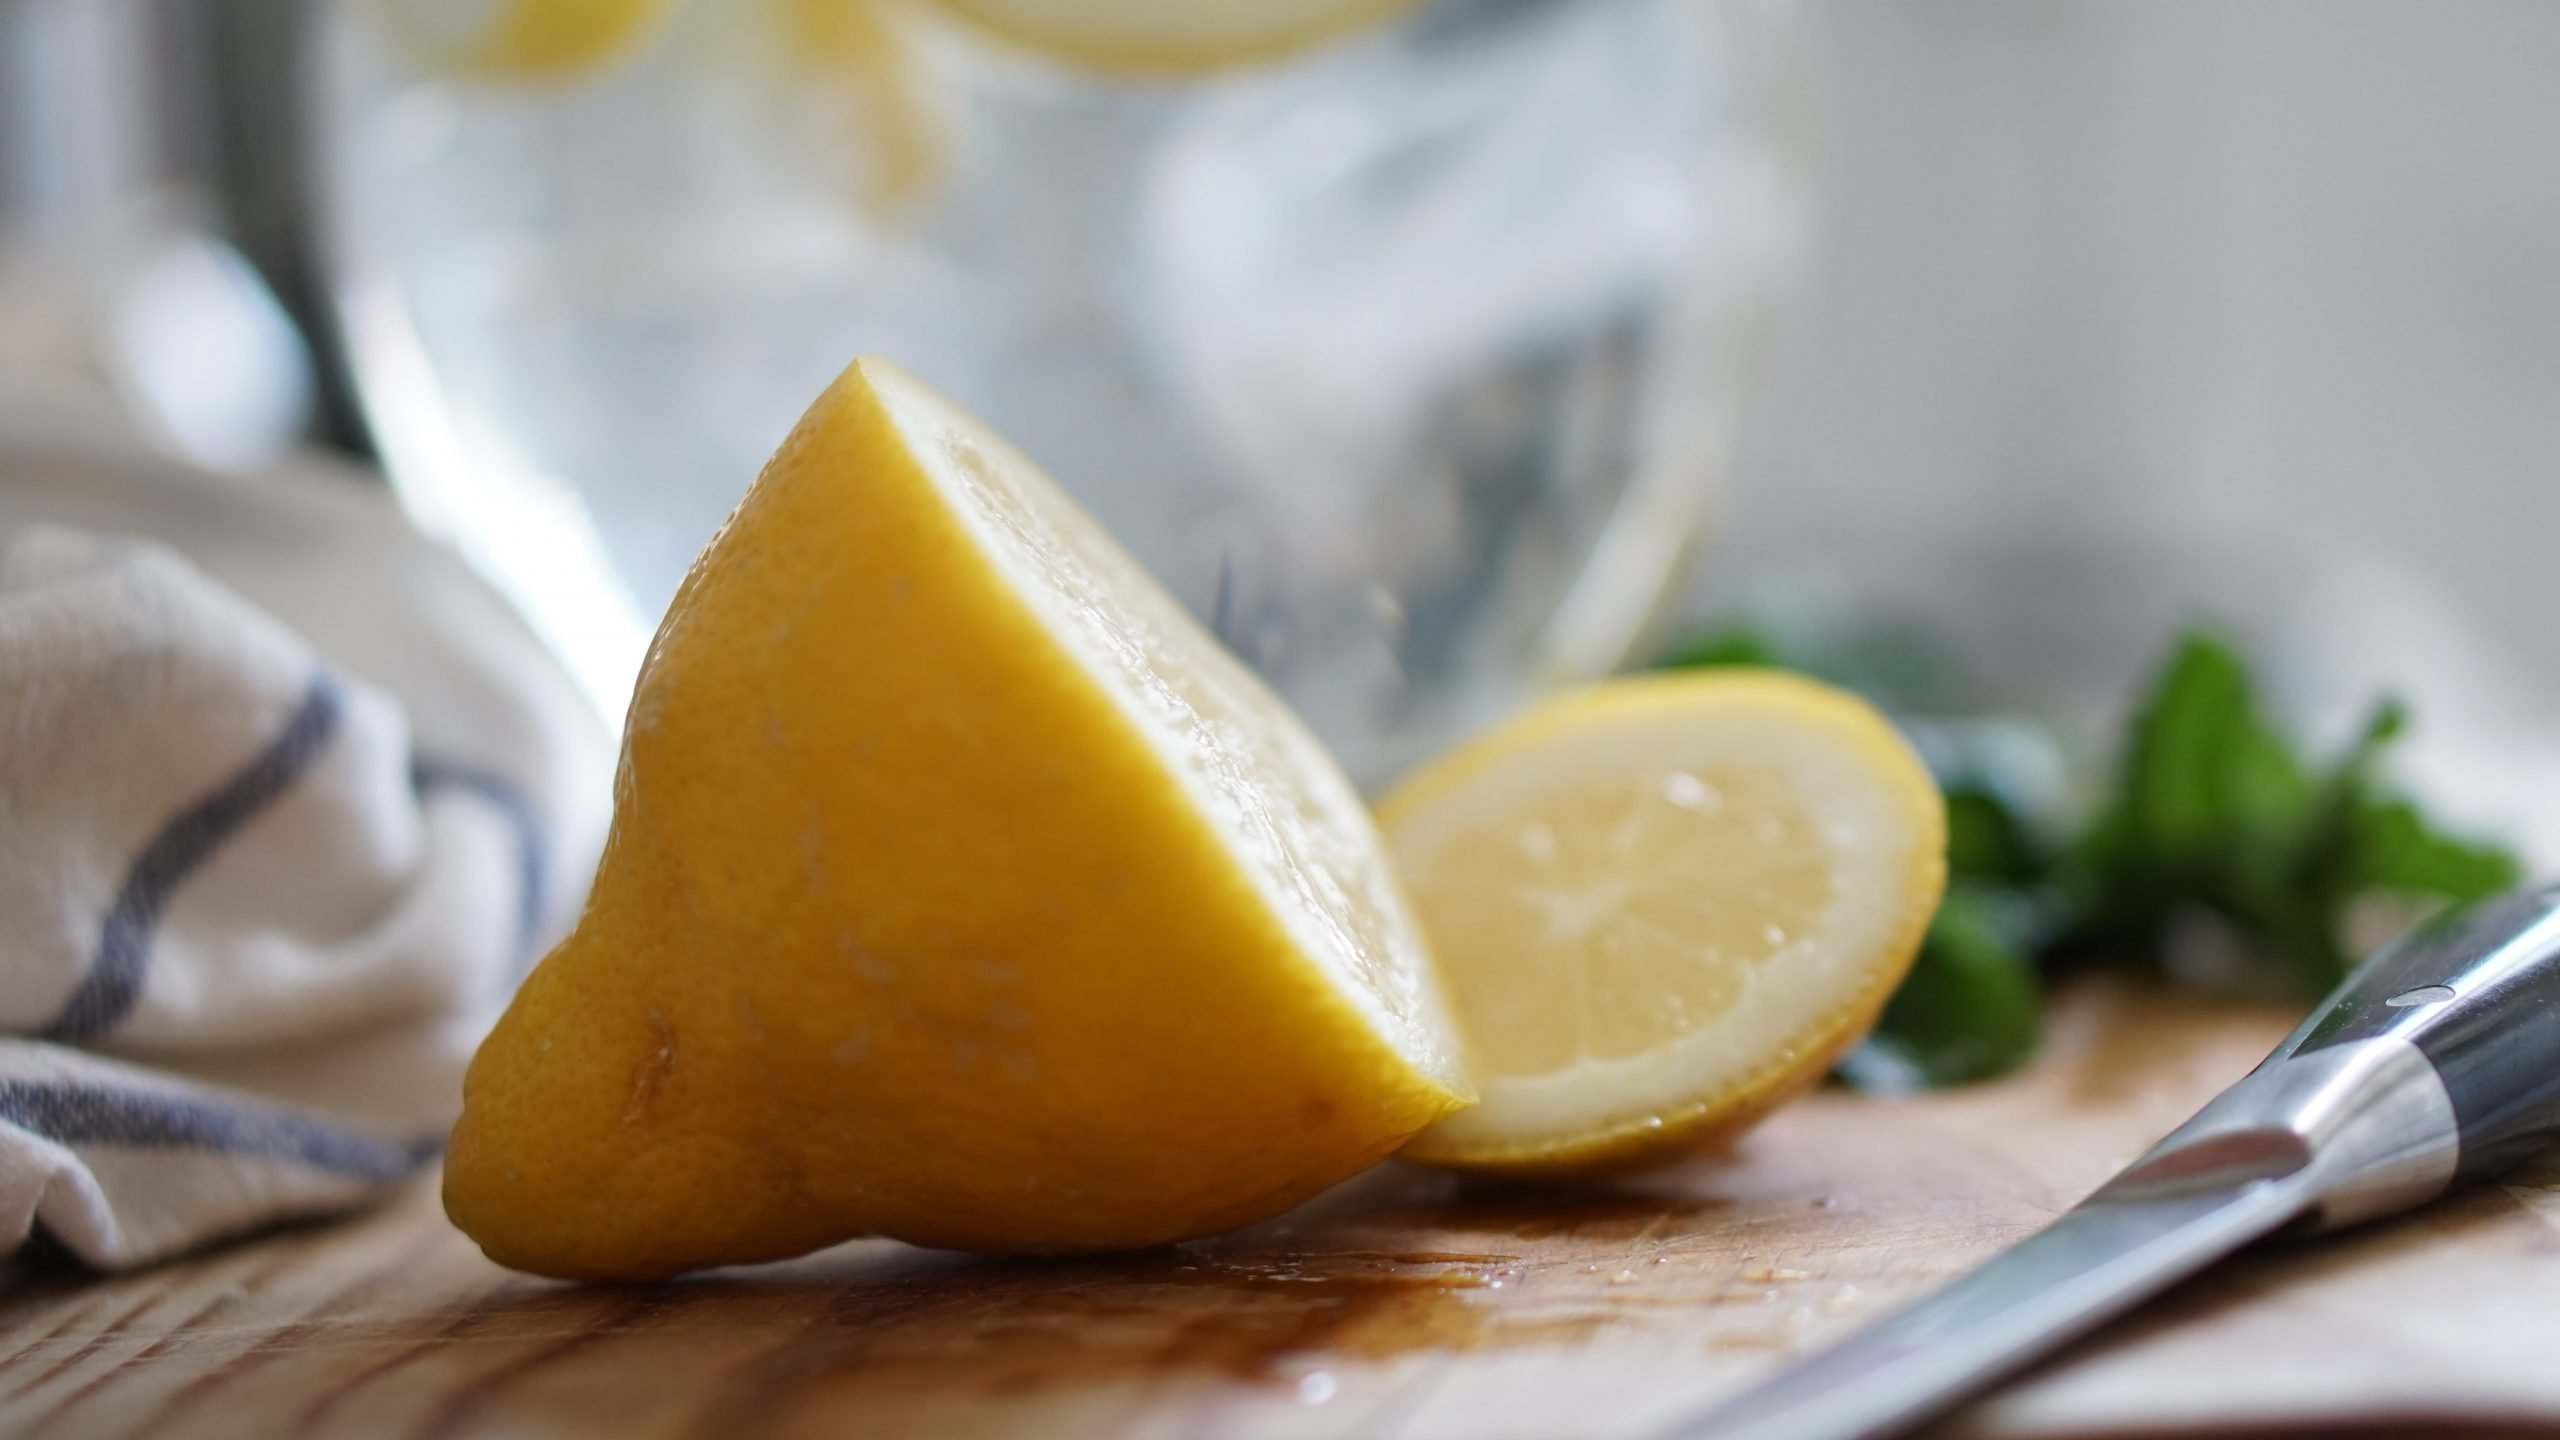 8 Simple Lemon and Vinegar Cleaning Hacks that Will Save You Money